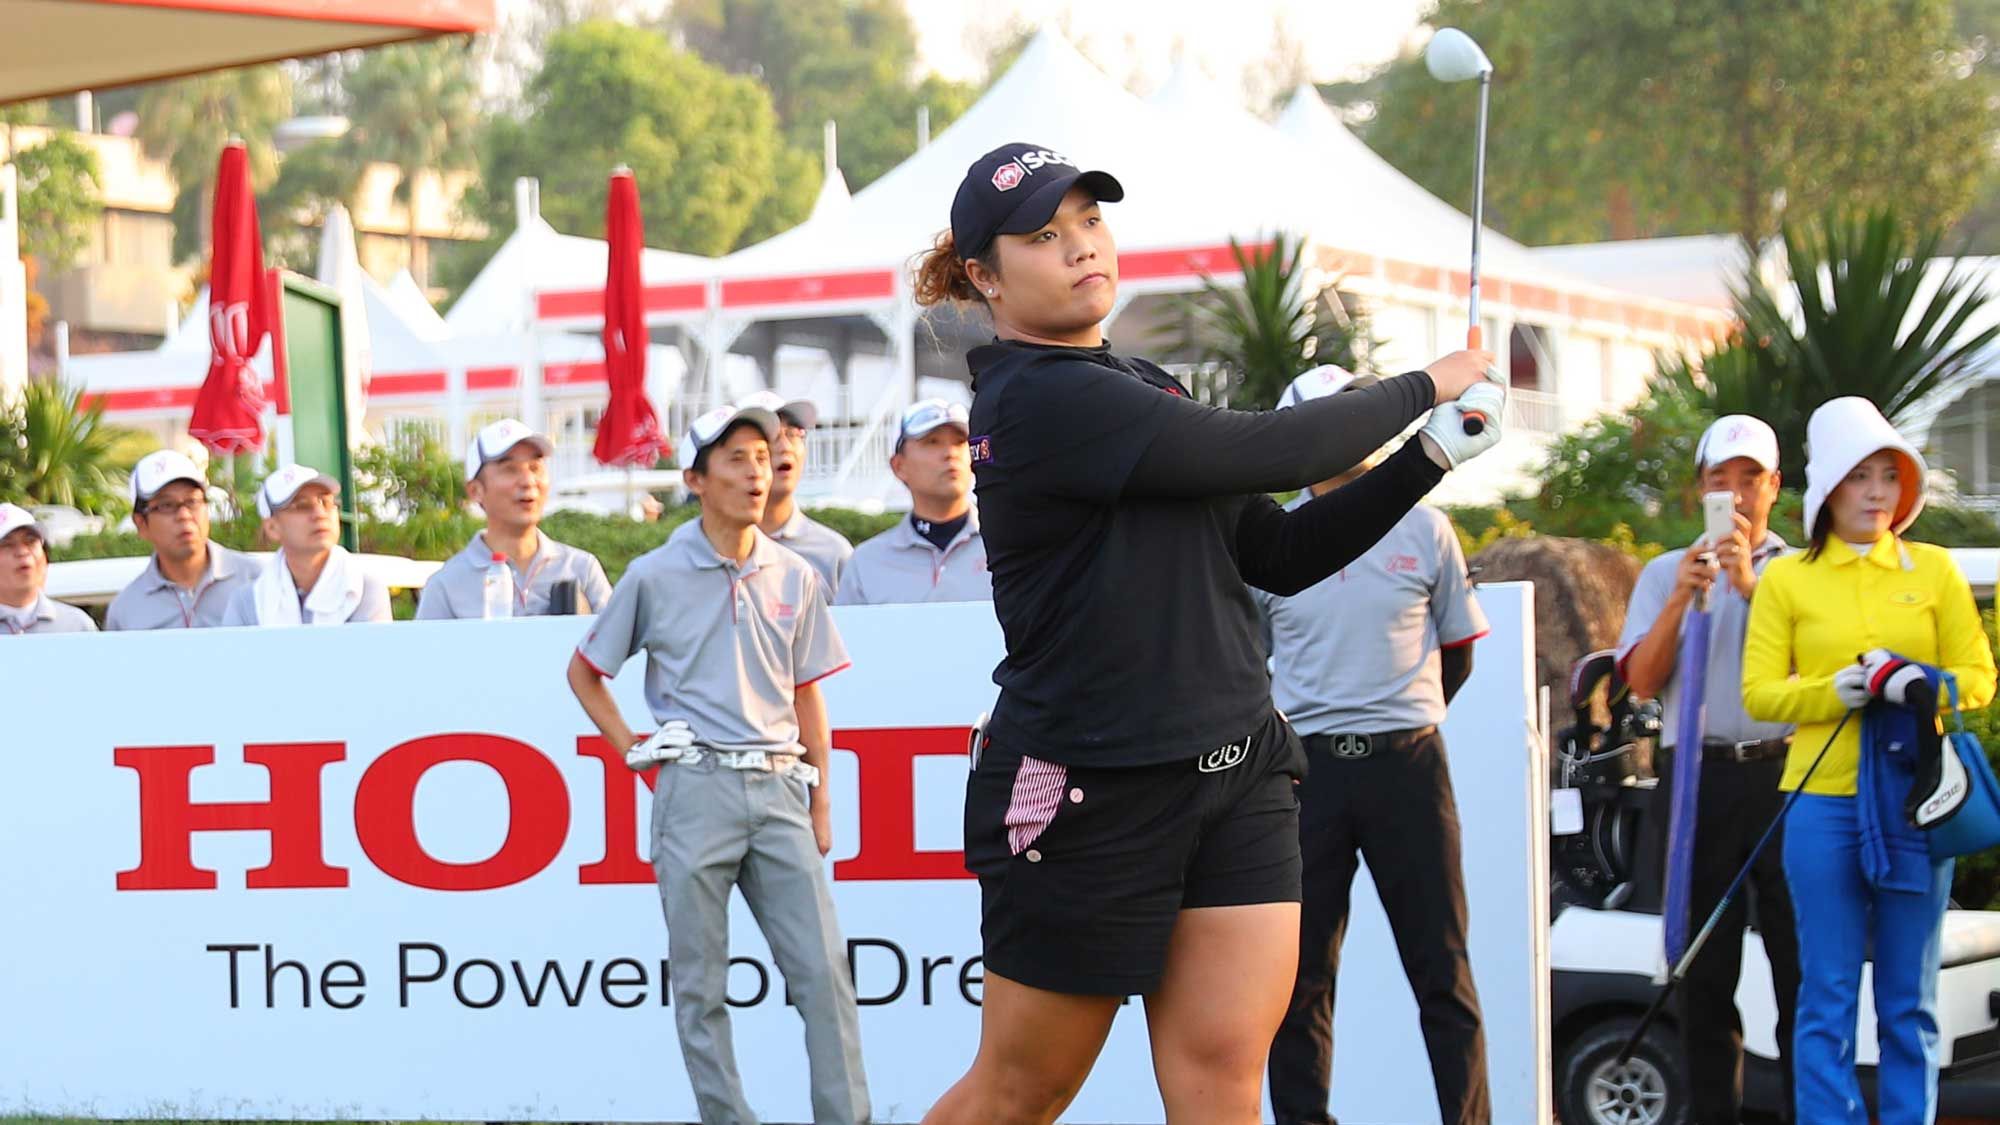 Ariya Jutanugarn during a practice round at the 2017 Honda LPGA Thailand